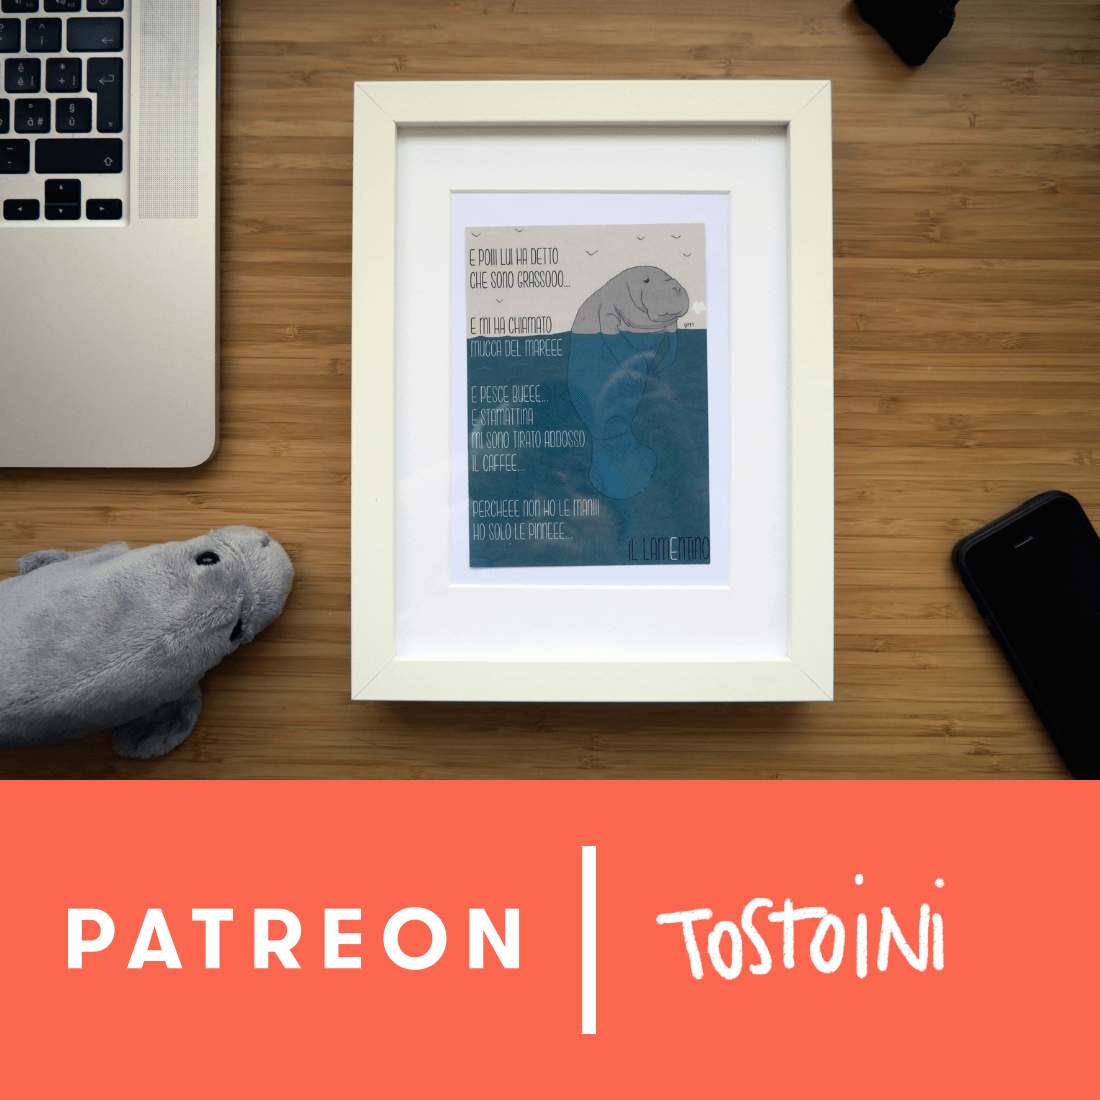 tostoini on patreon